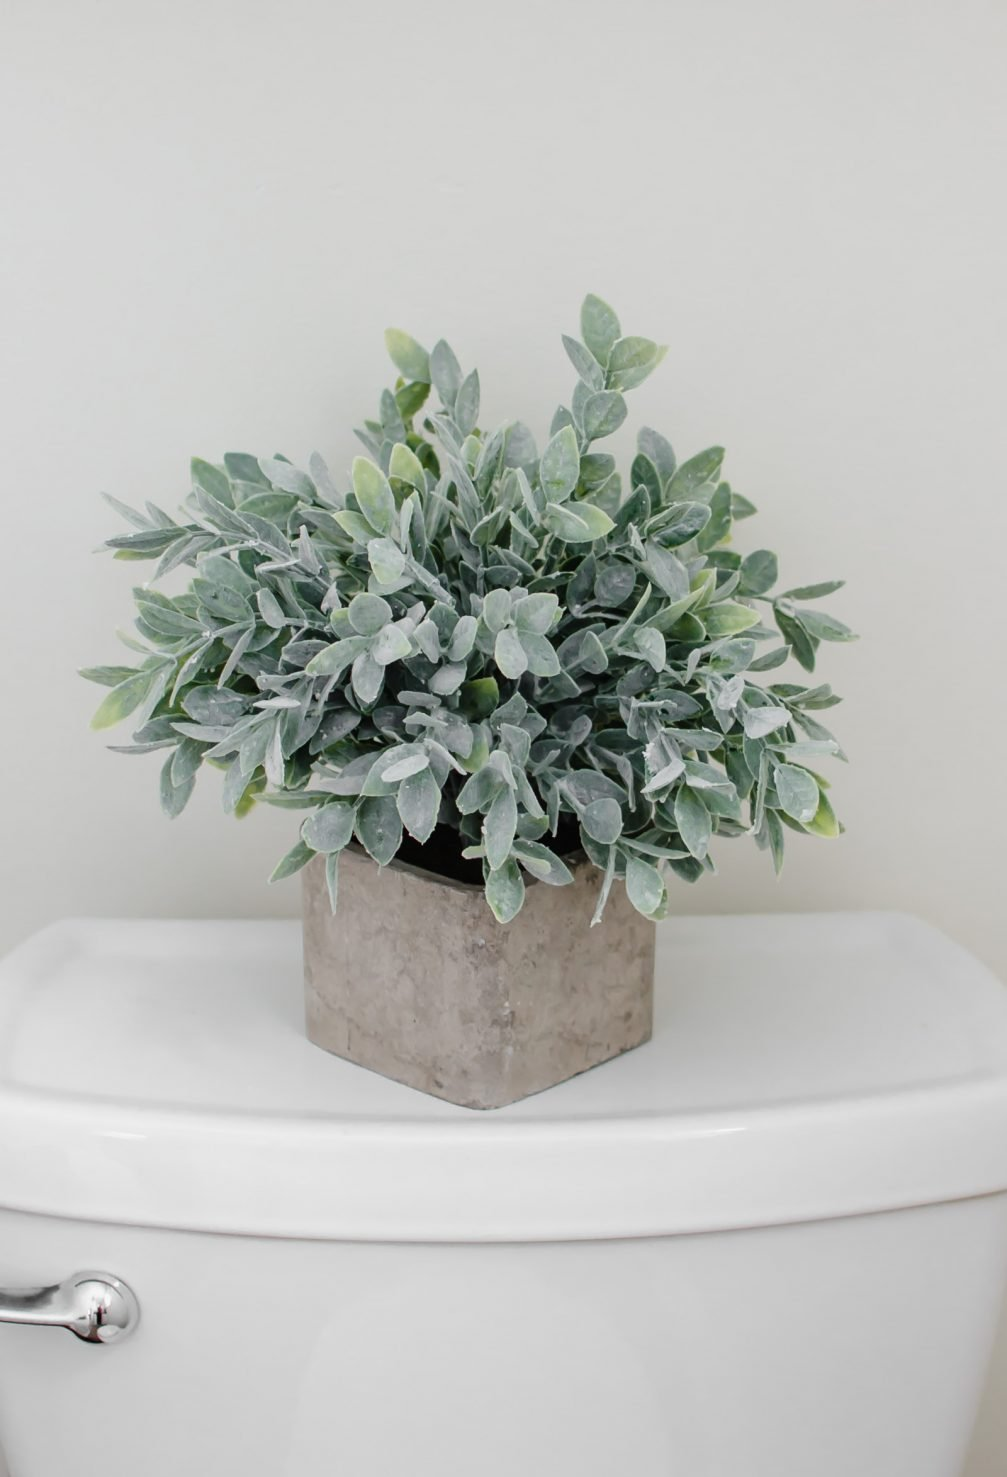 How To Incorporate Pinterest's 2018 Color, Sage Green